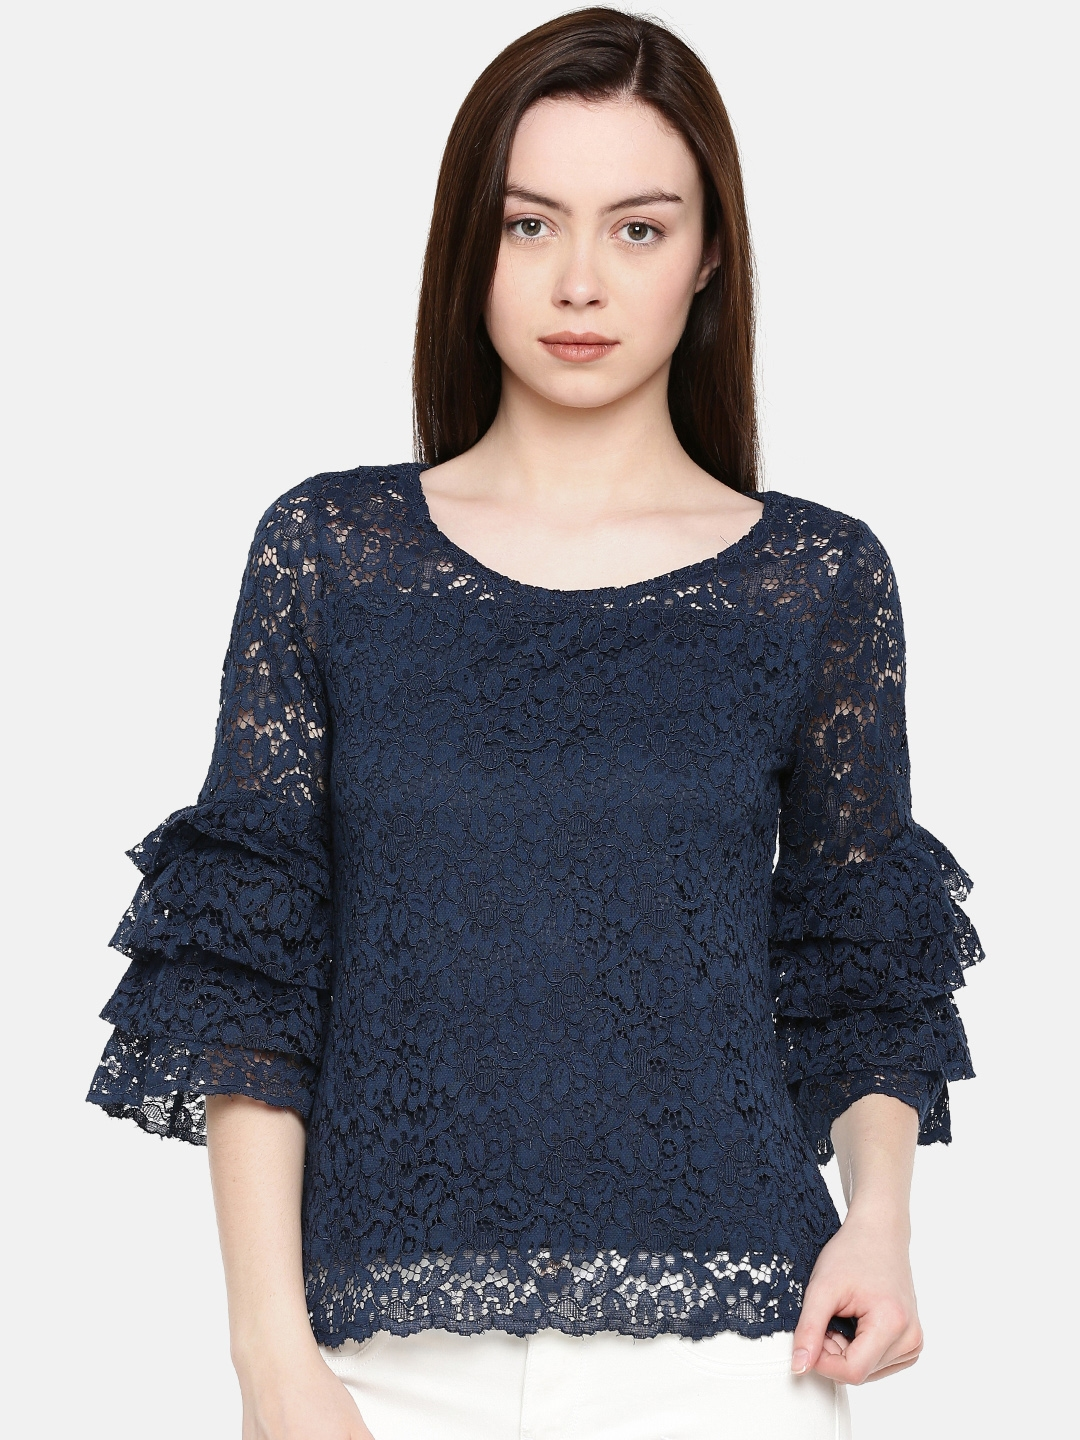 d498a2aaf7 Buy CODE By Lifestyle Women Navy Blue Self Design Lace Top - Tops ...